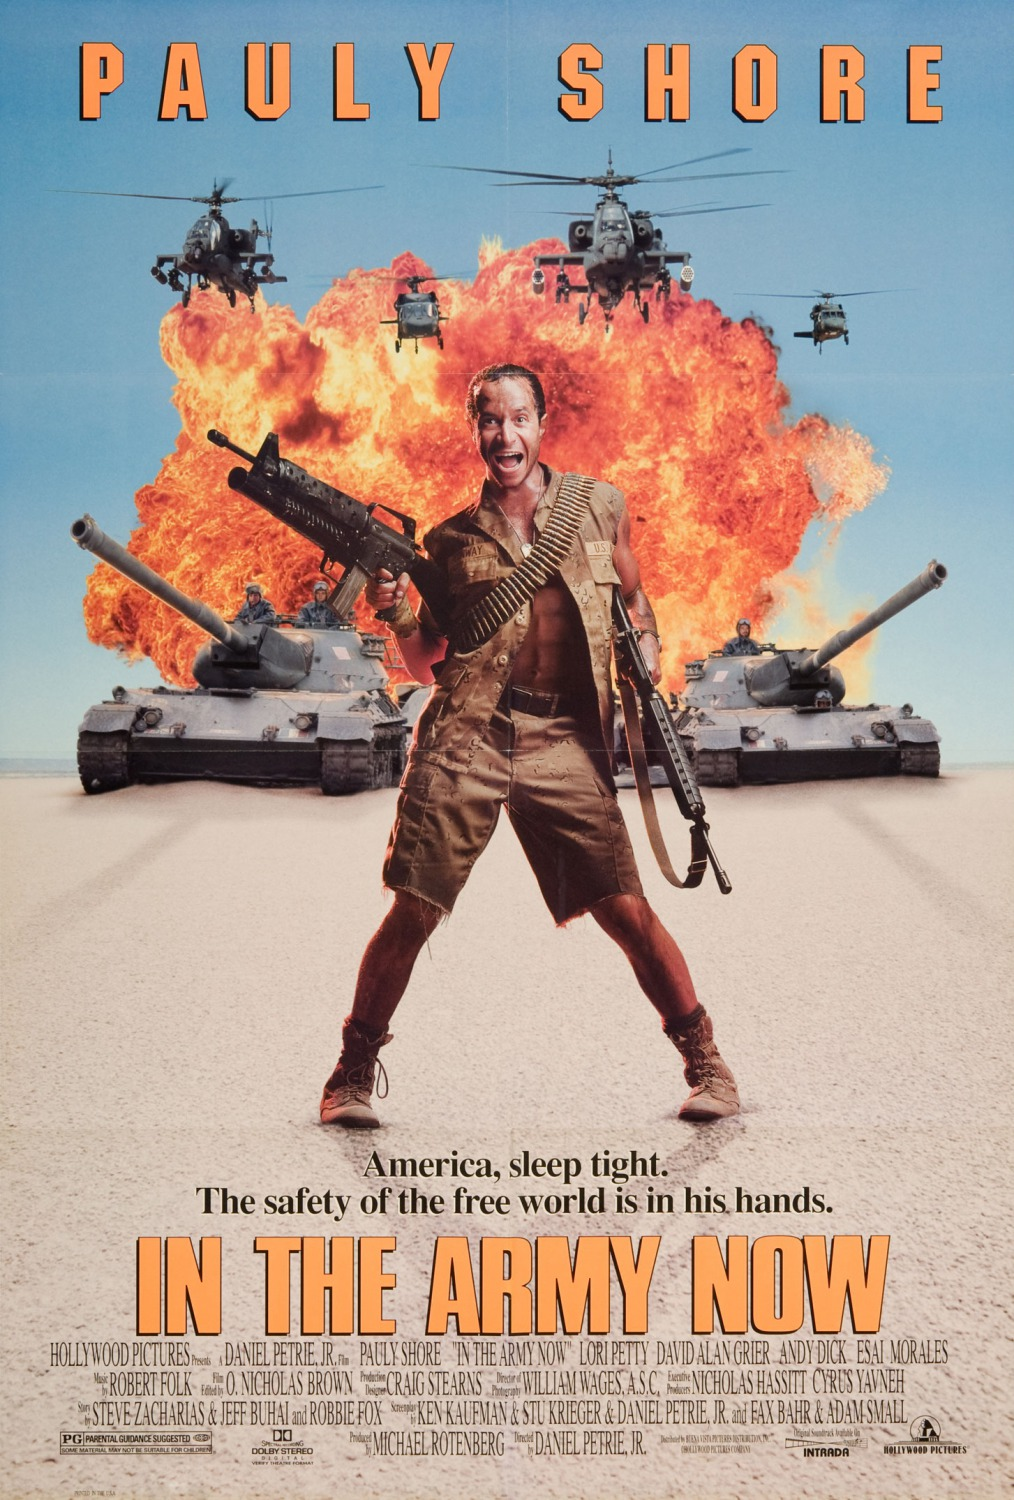 Delirious Comedy Club Presents Pauly Shore From In The Army Now